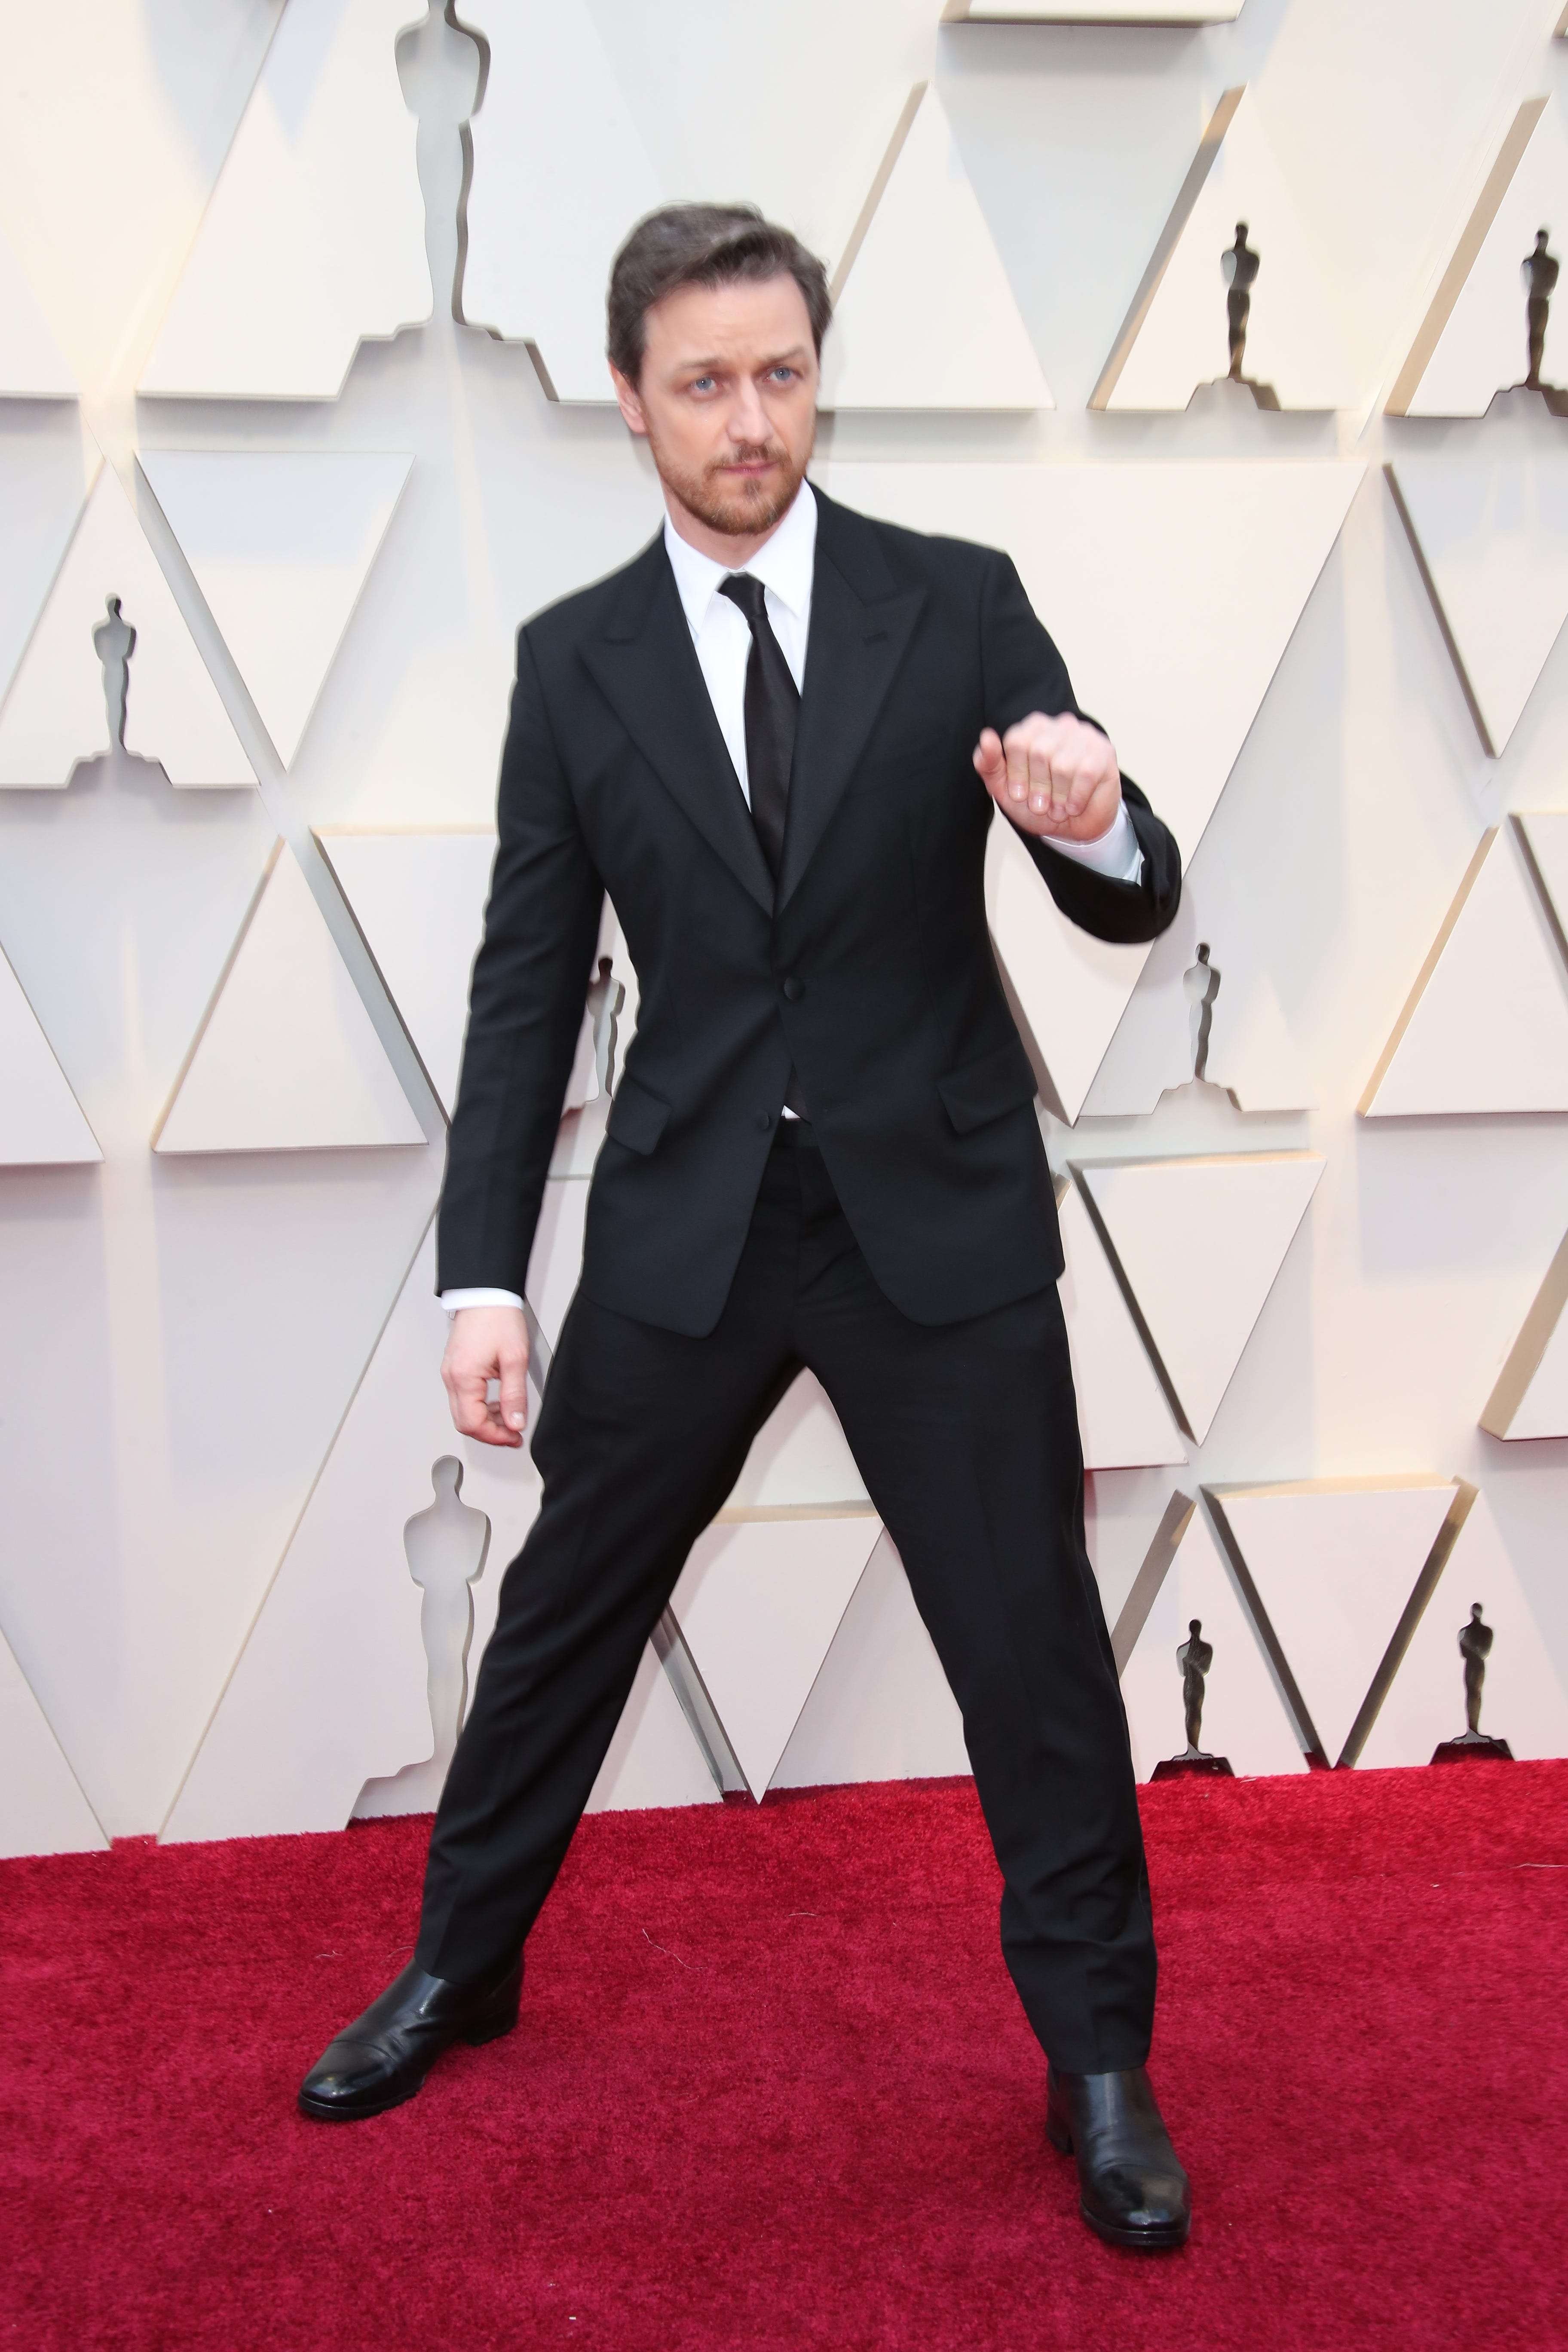 February 24, 2019; Los Angeles, CA, USA; James McAvoy arrives at the 91st Academy Awards at the Dolby Theatre. Mandatory Credit: Dan MacMedan-USA TODAY NETWORK (Via OlyDrop)